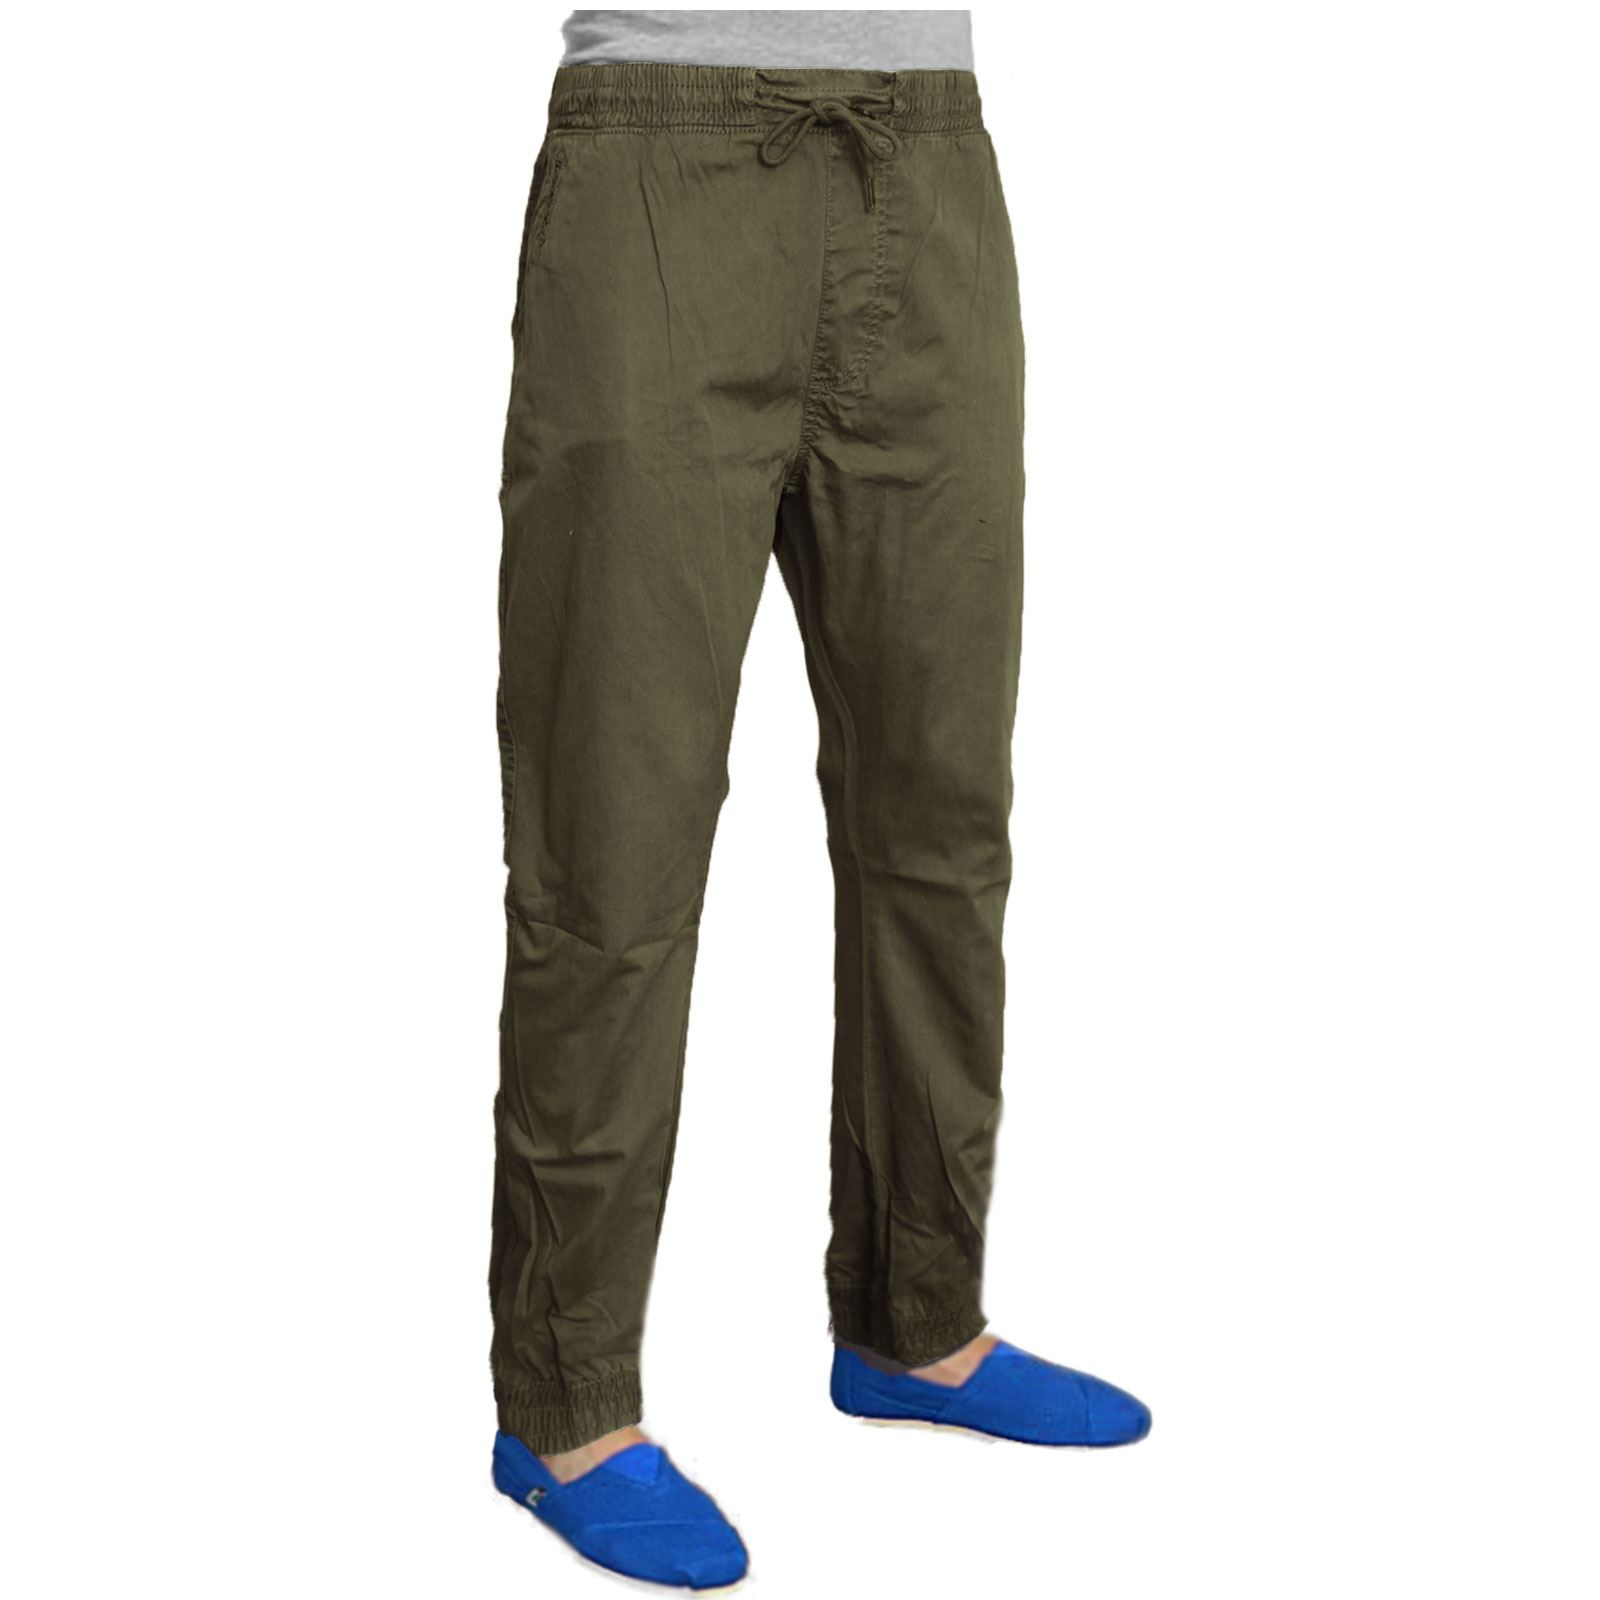 For Mens Jeans Chinos C 1_8